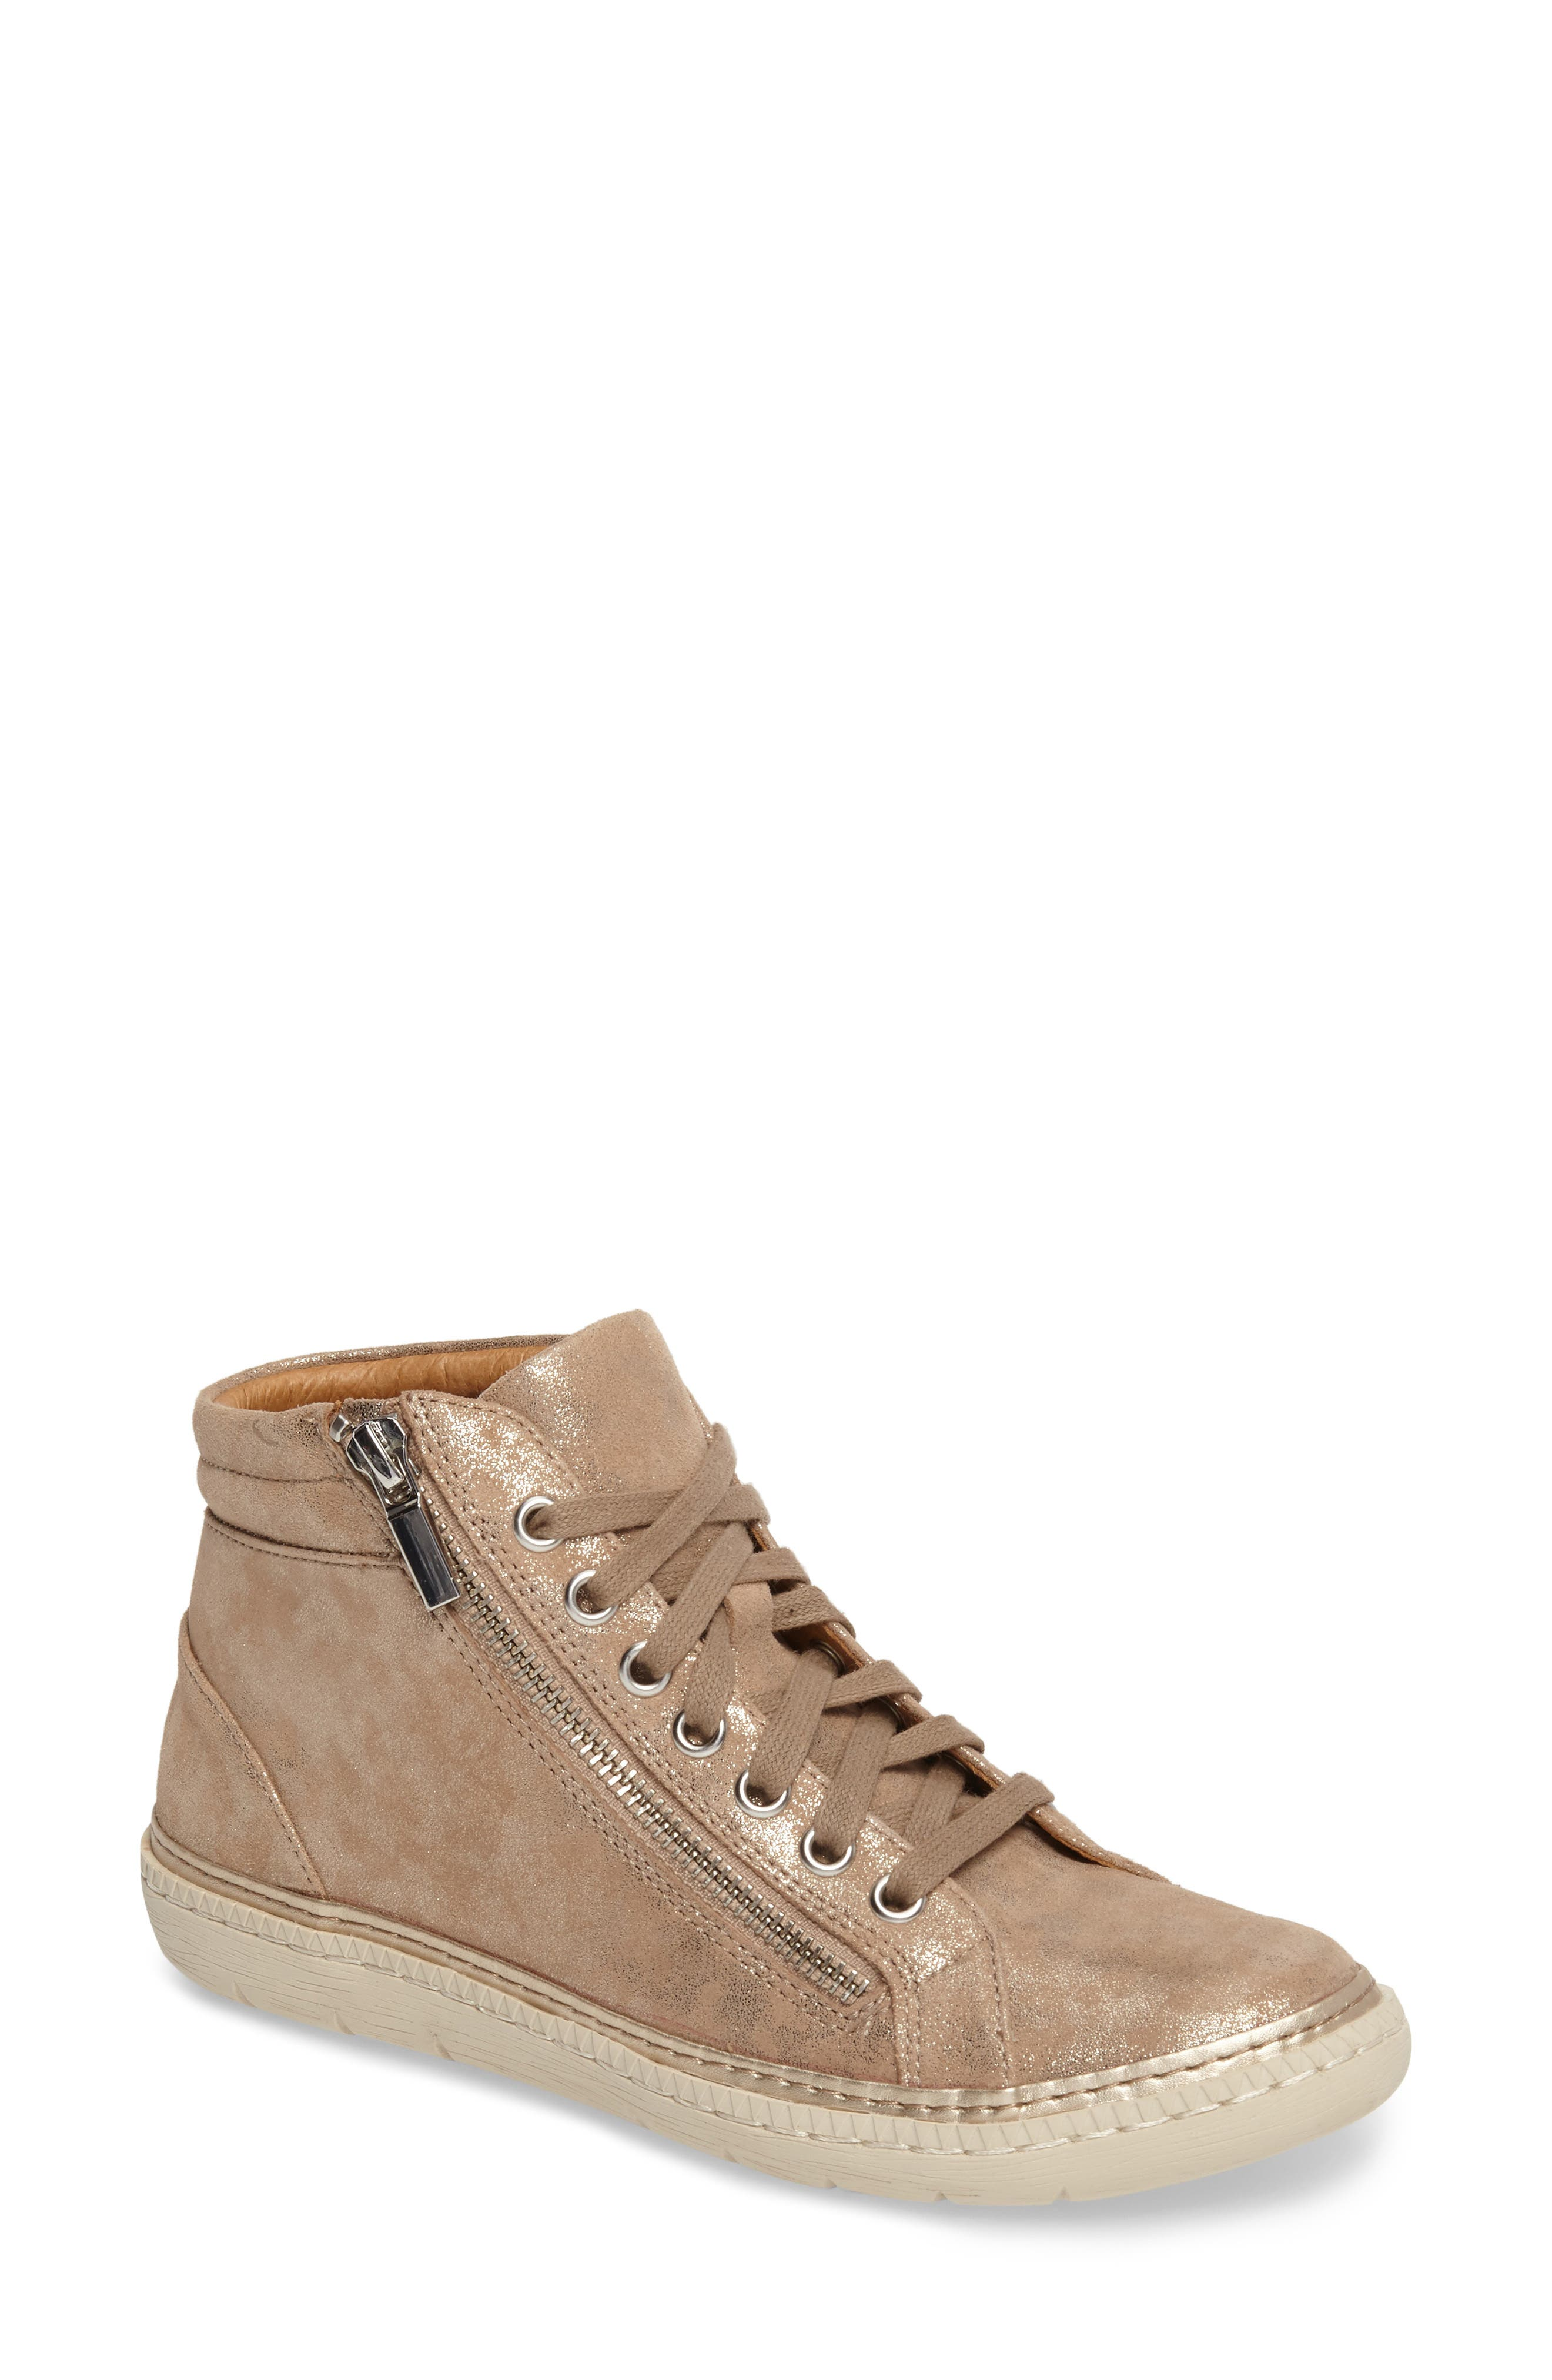 Annaleigh High Top Sneaker,                             Main thumbnail 1, color,                             ANTHRACITE FOIL SUEDE